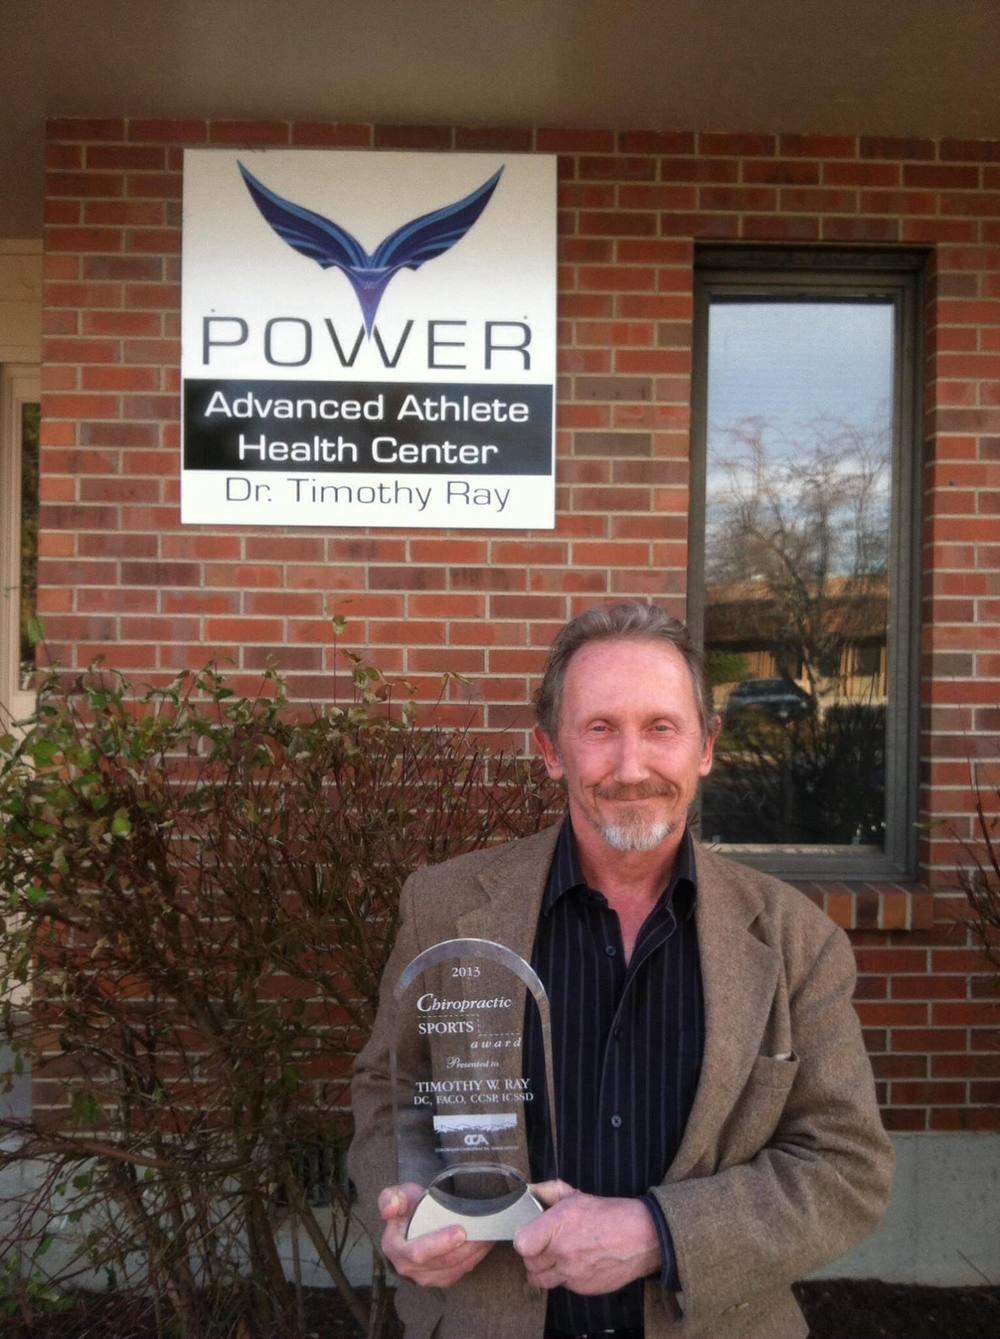 Dr. Tim Ray - Colorado Sports Chiropractor of the Year 2013